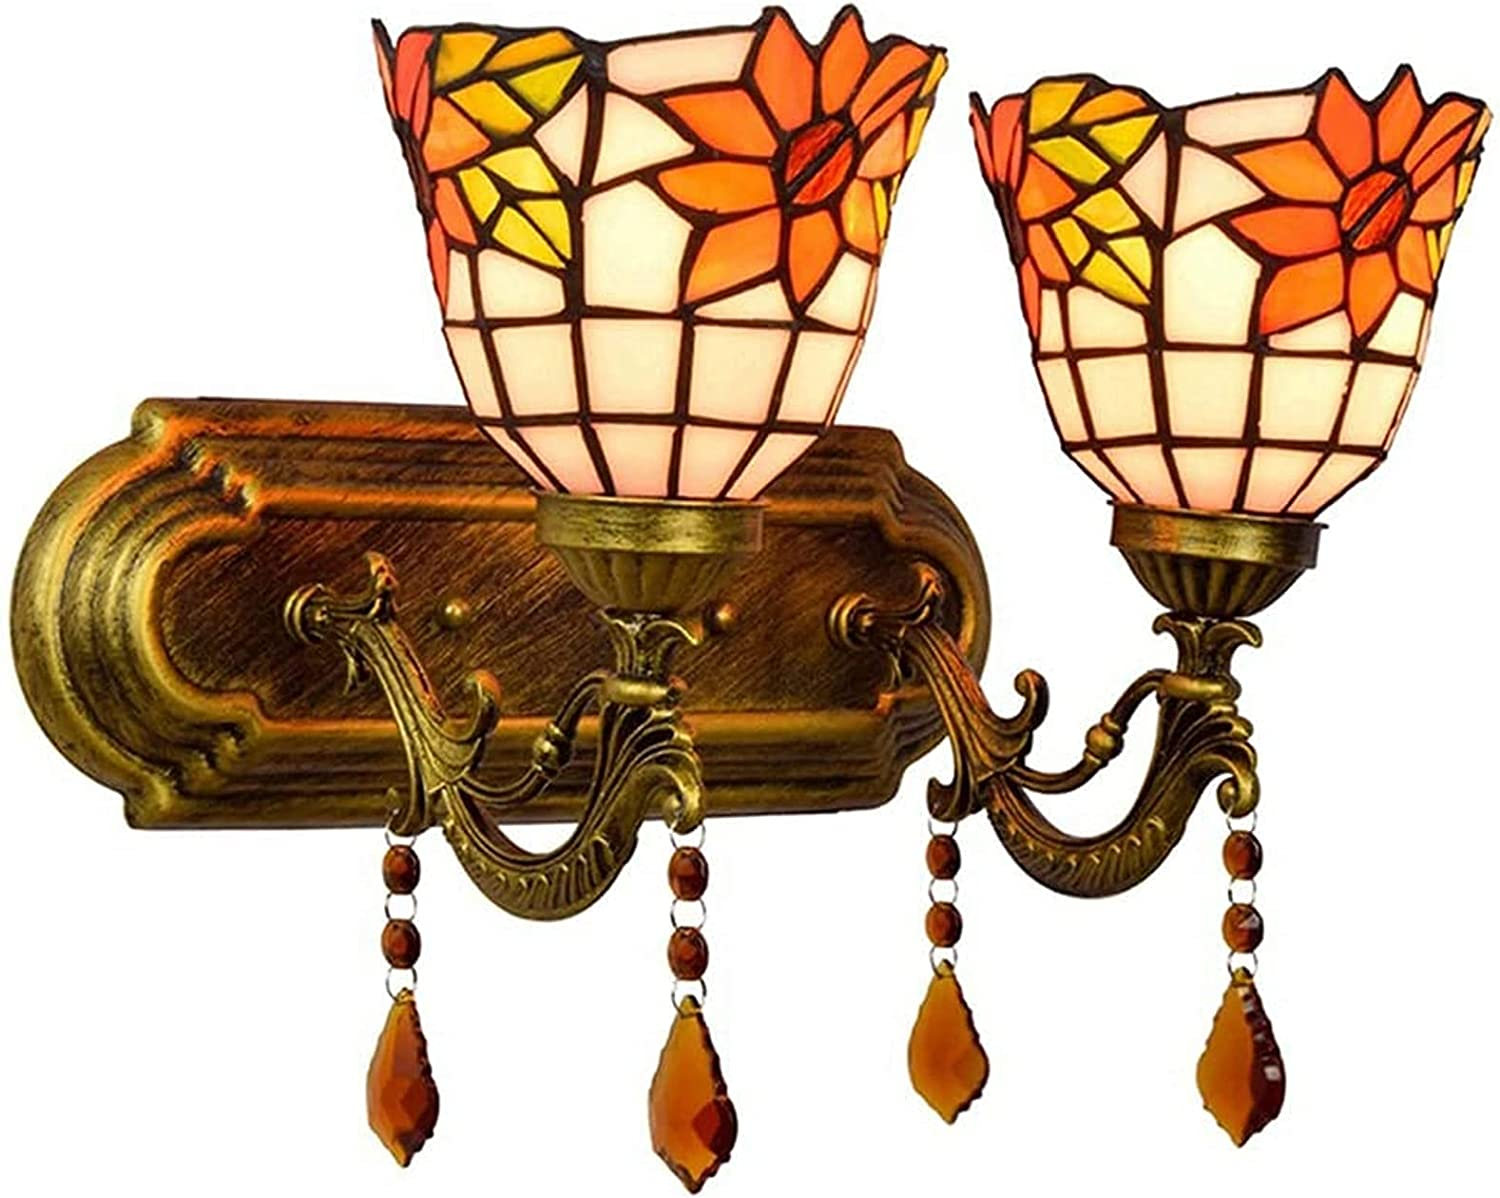 Wall Lamp Fixture Courier shipping free Light Colored Glass Sale item Design of